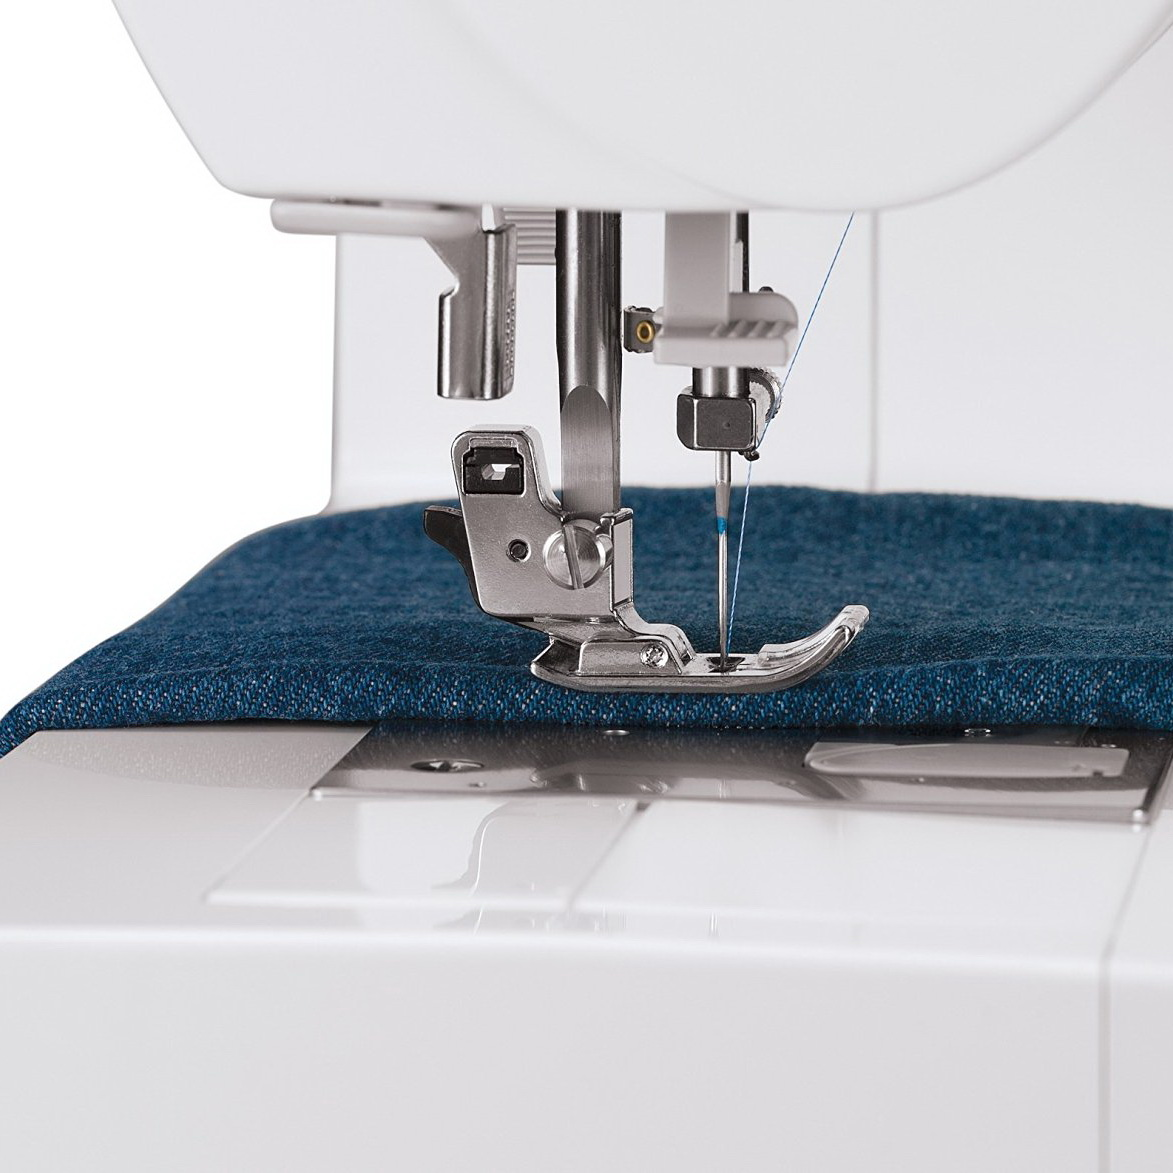 Singer 9985 Quantum Stylist Touch Sewing Machine